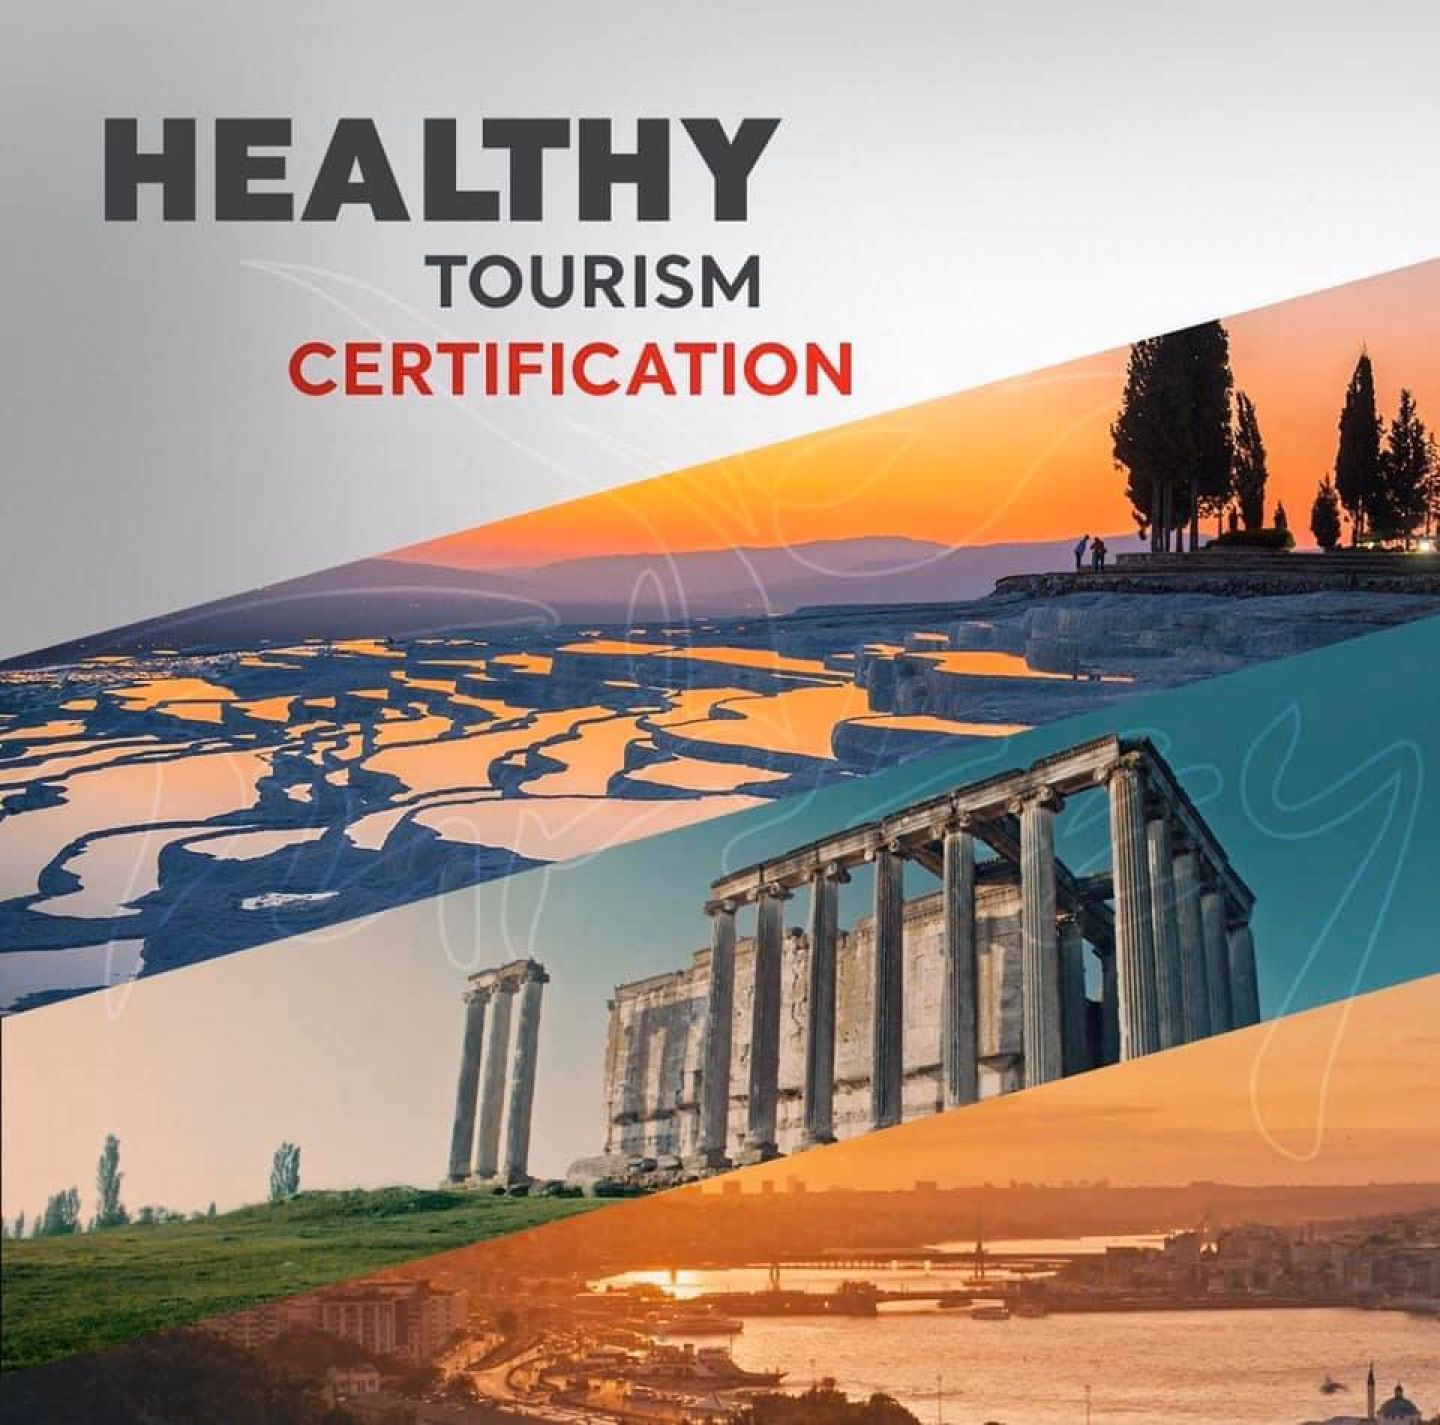 Turkey to Launch Healthy Tourism Certification Program